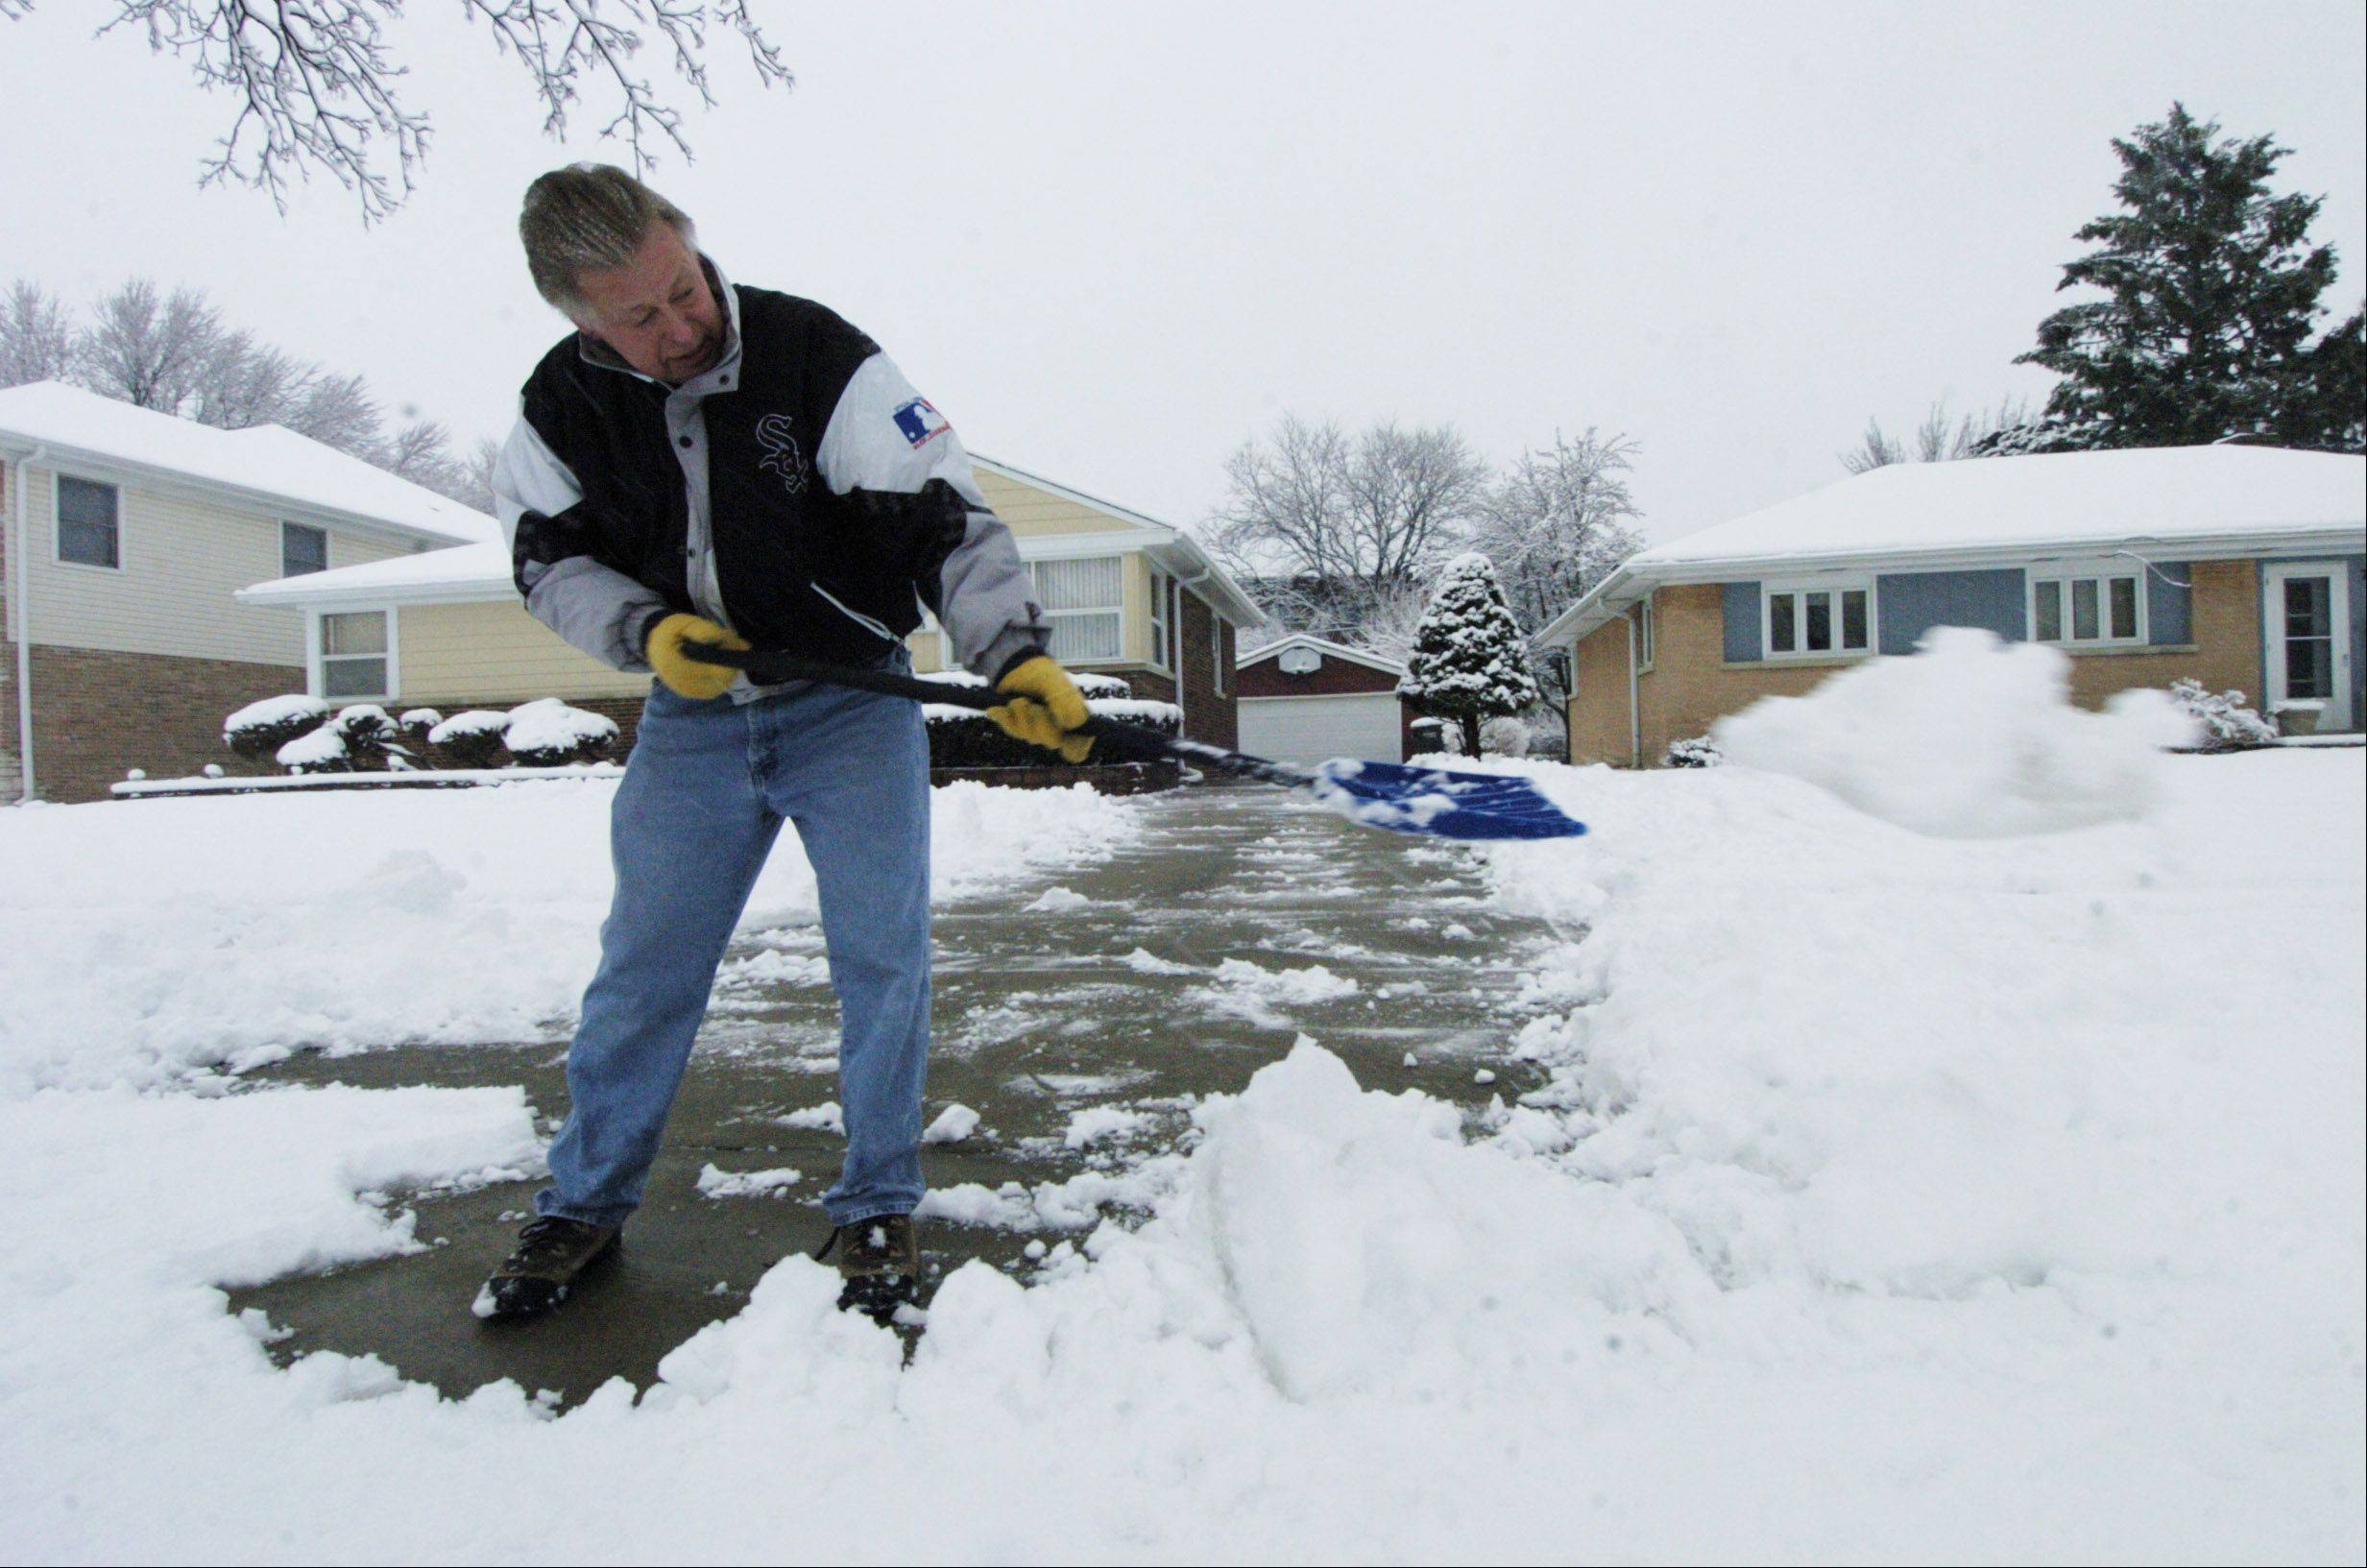 Don Sosnowski shovels wet, heavy snow in front of his home on Busse Ave. in Mount Prospect Friday morning.